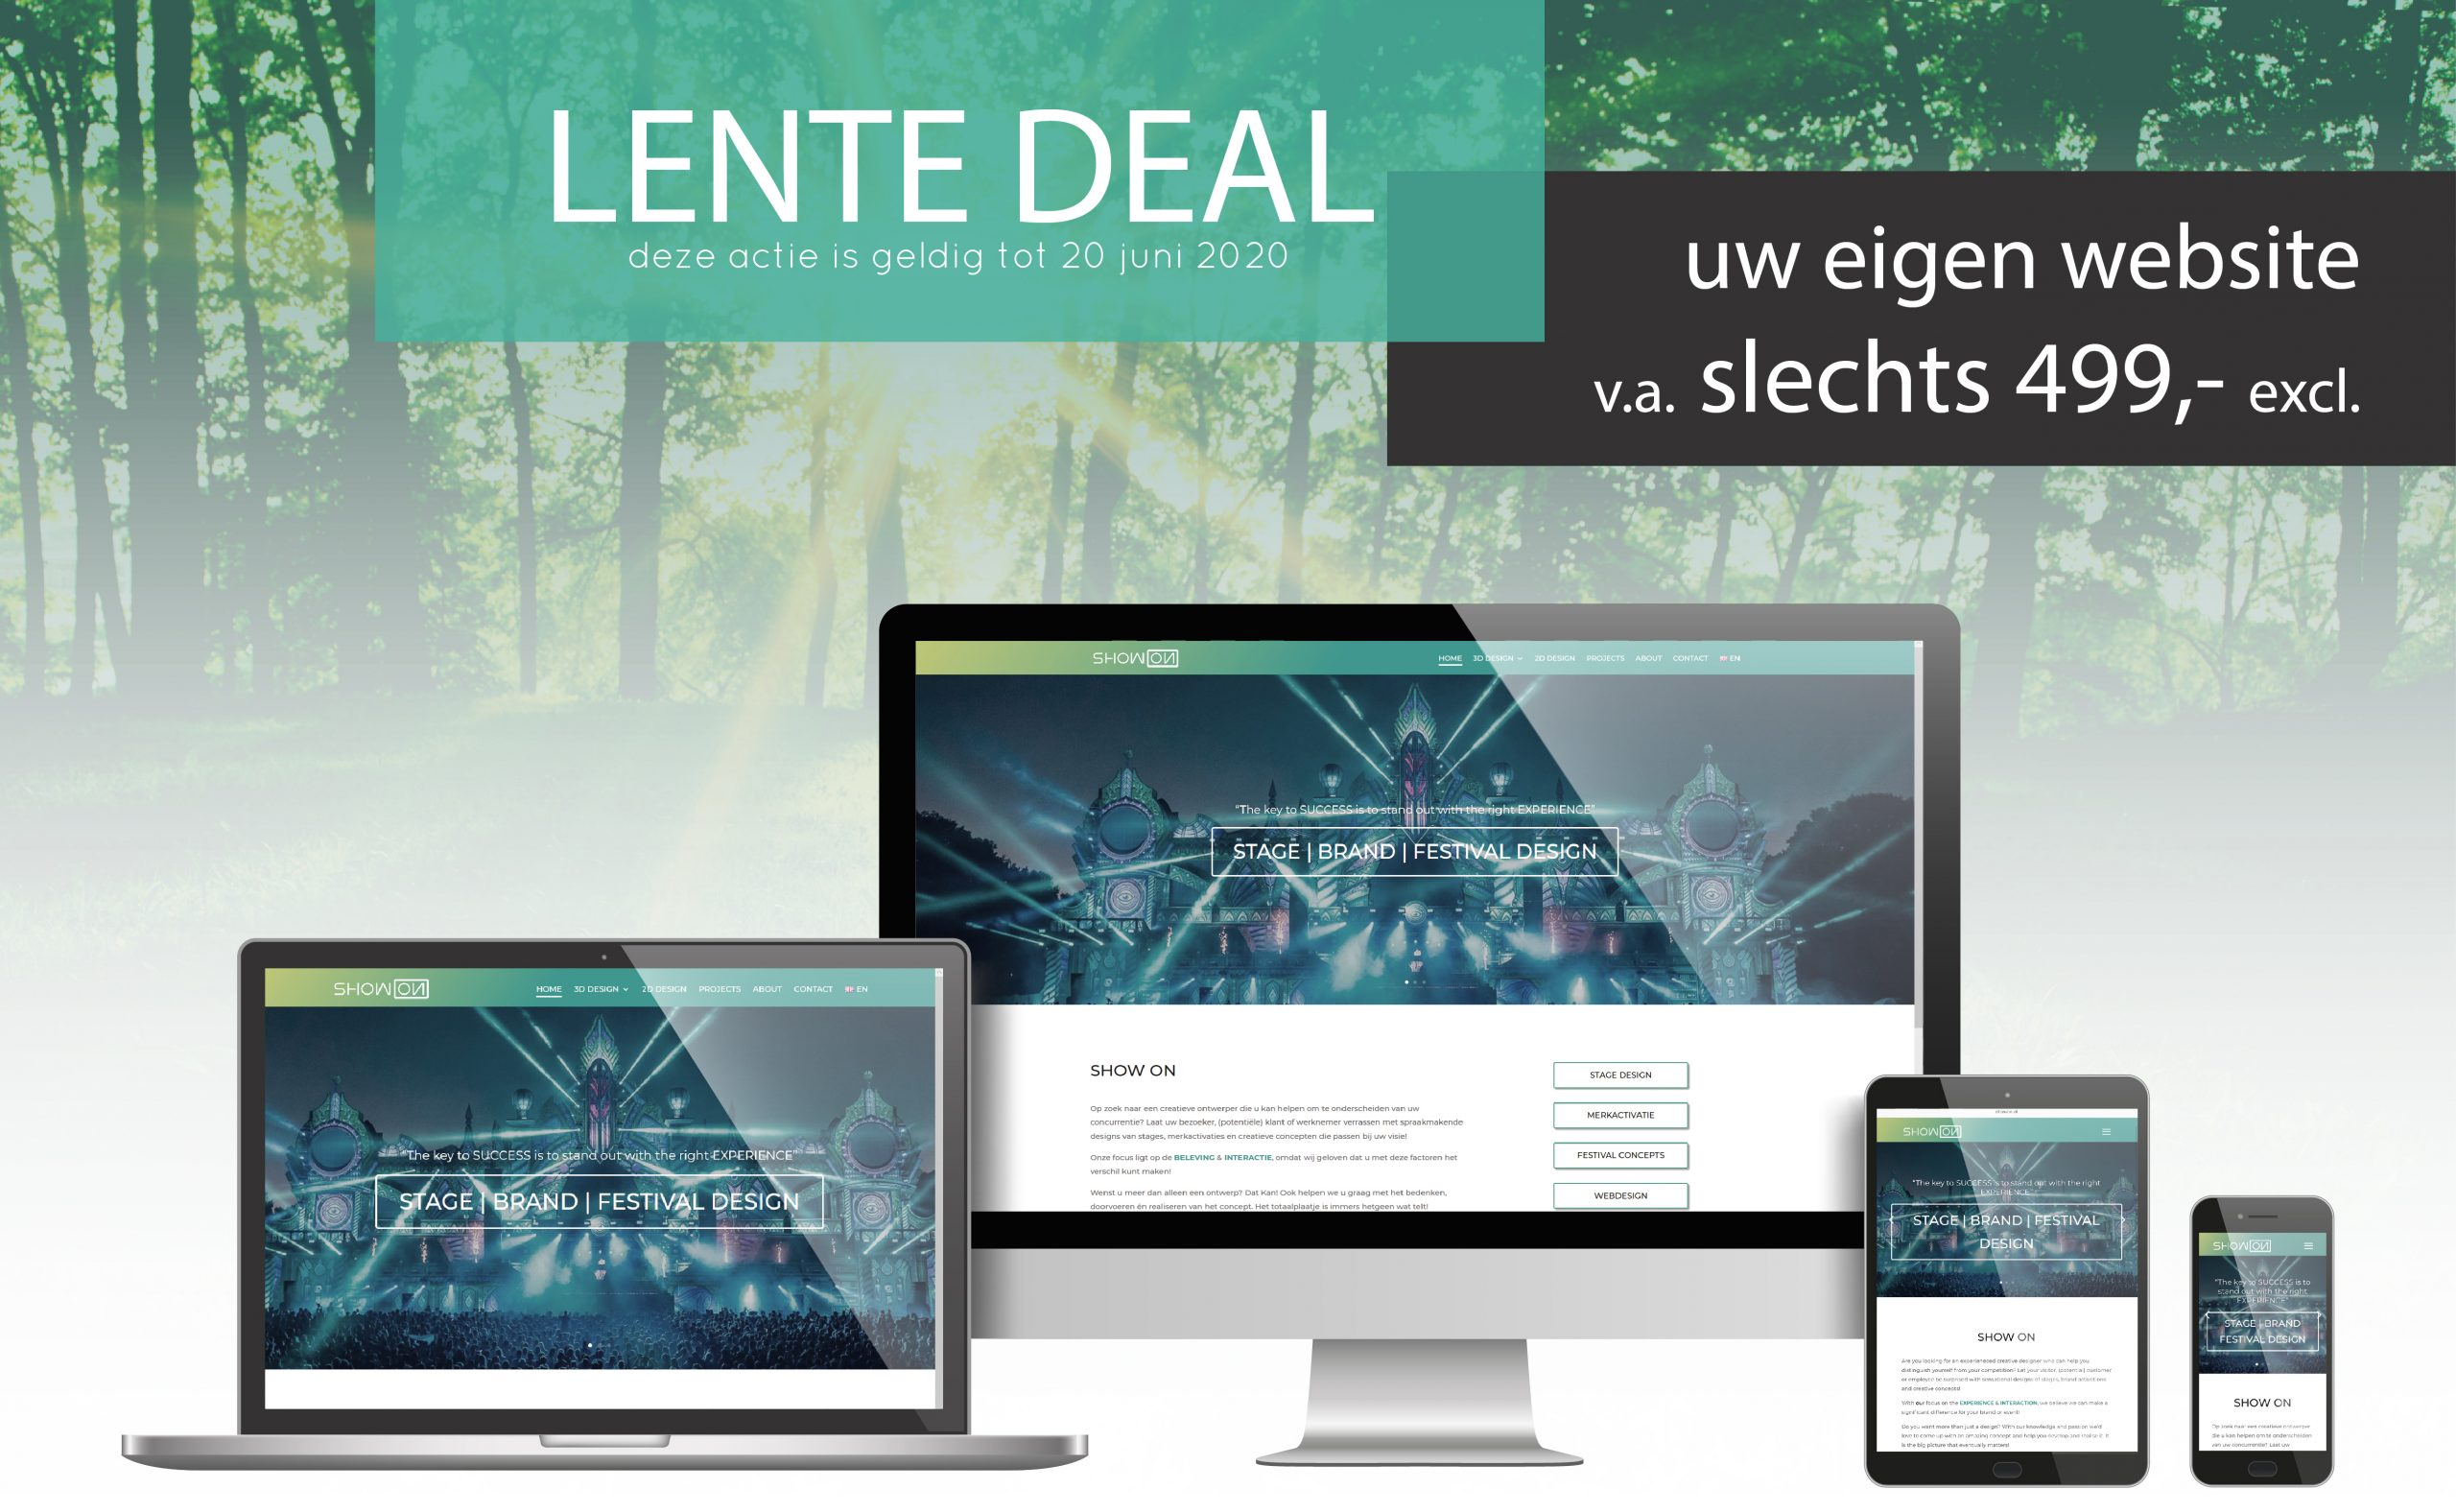 flyer website lentedeal